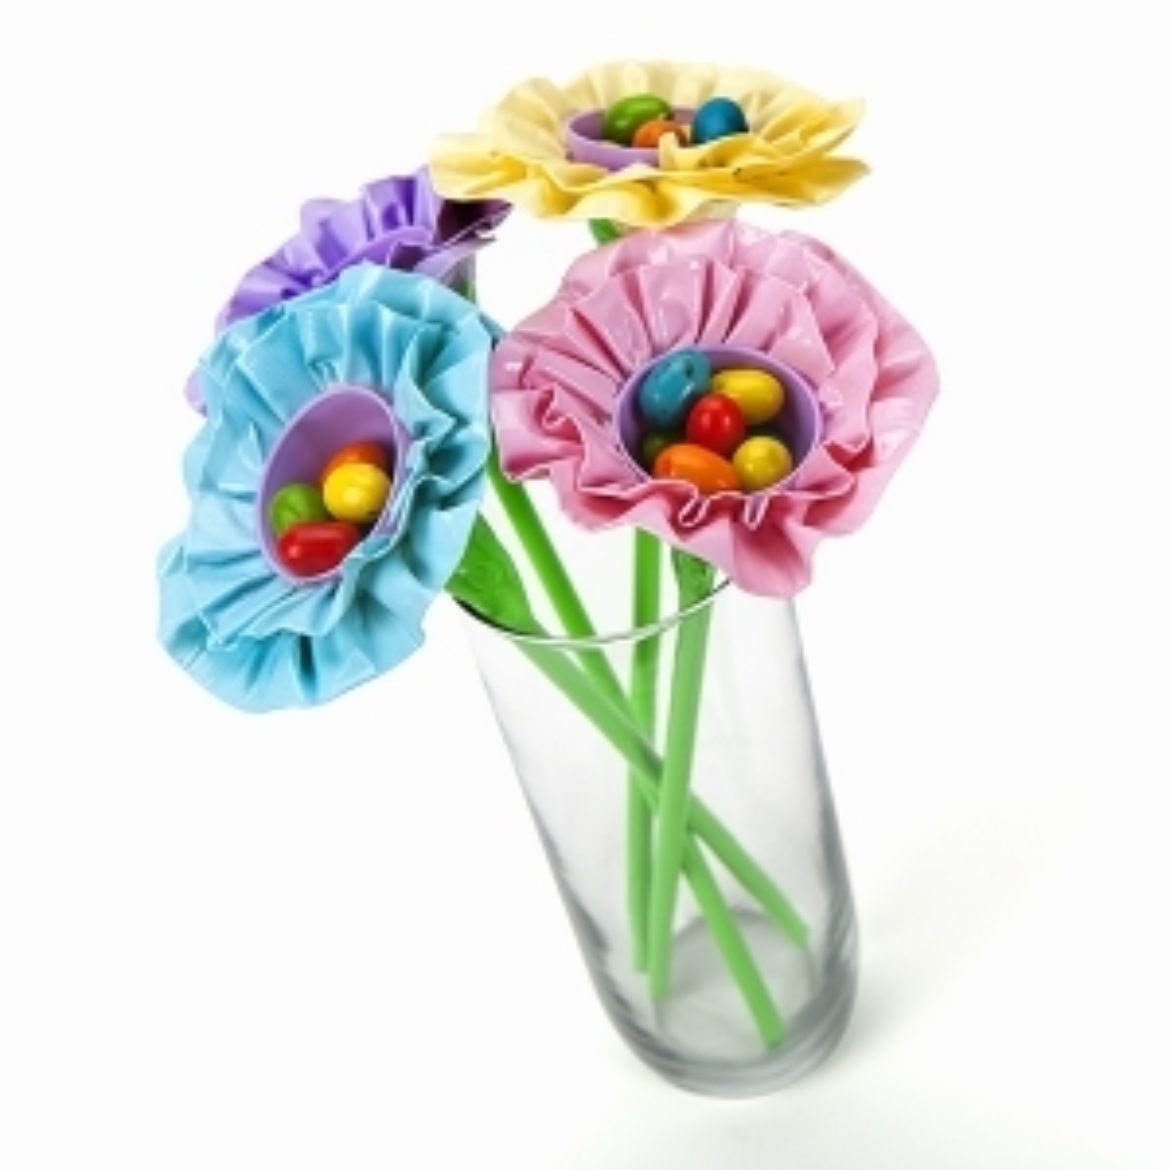 Completed Duck Tape® Easter Egg Flower with candy in the center